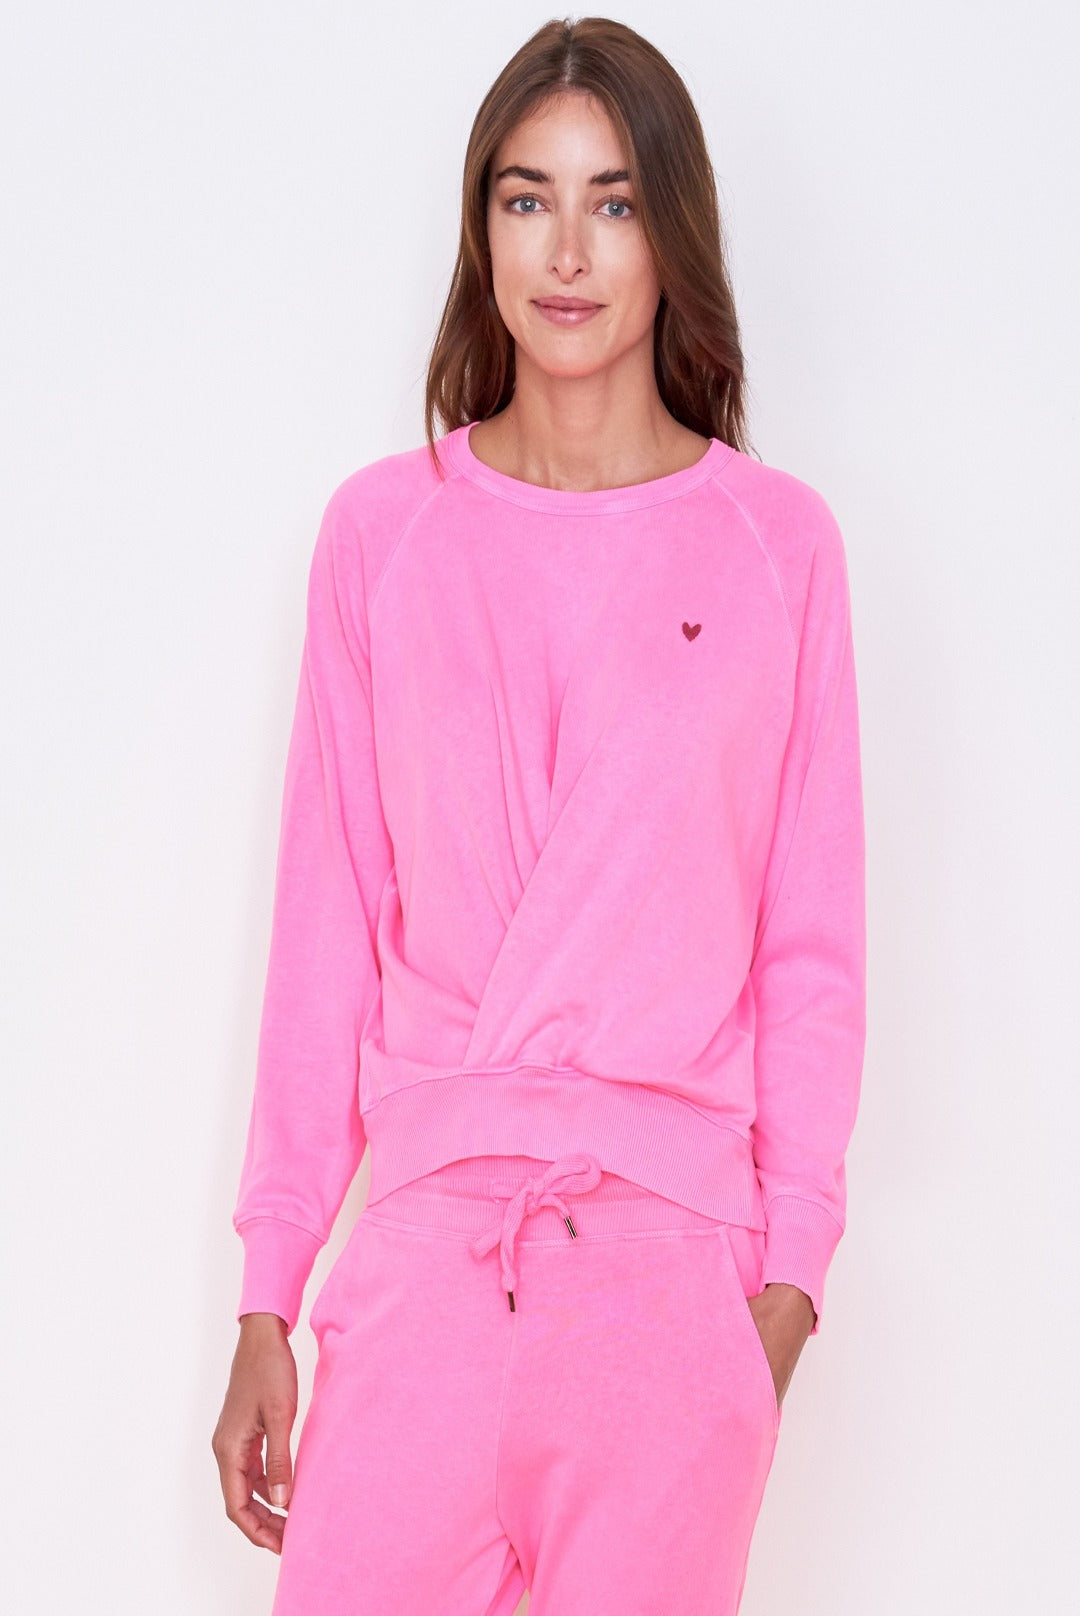 Sundry Little Heart Pleated Sweatshirt